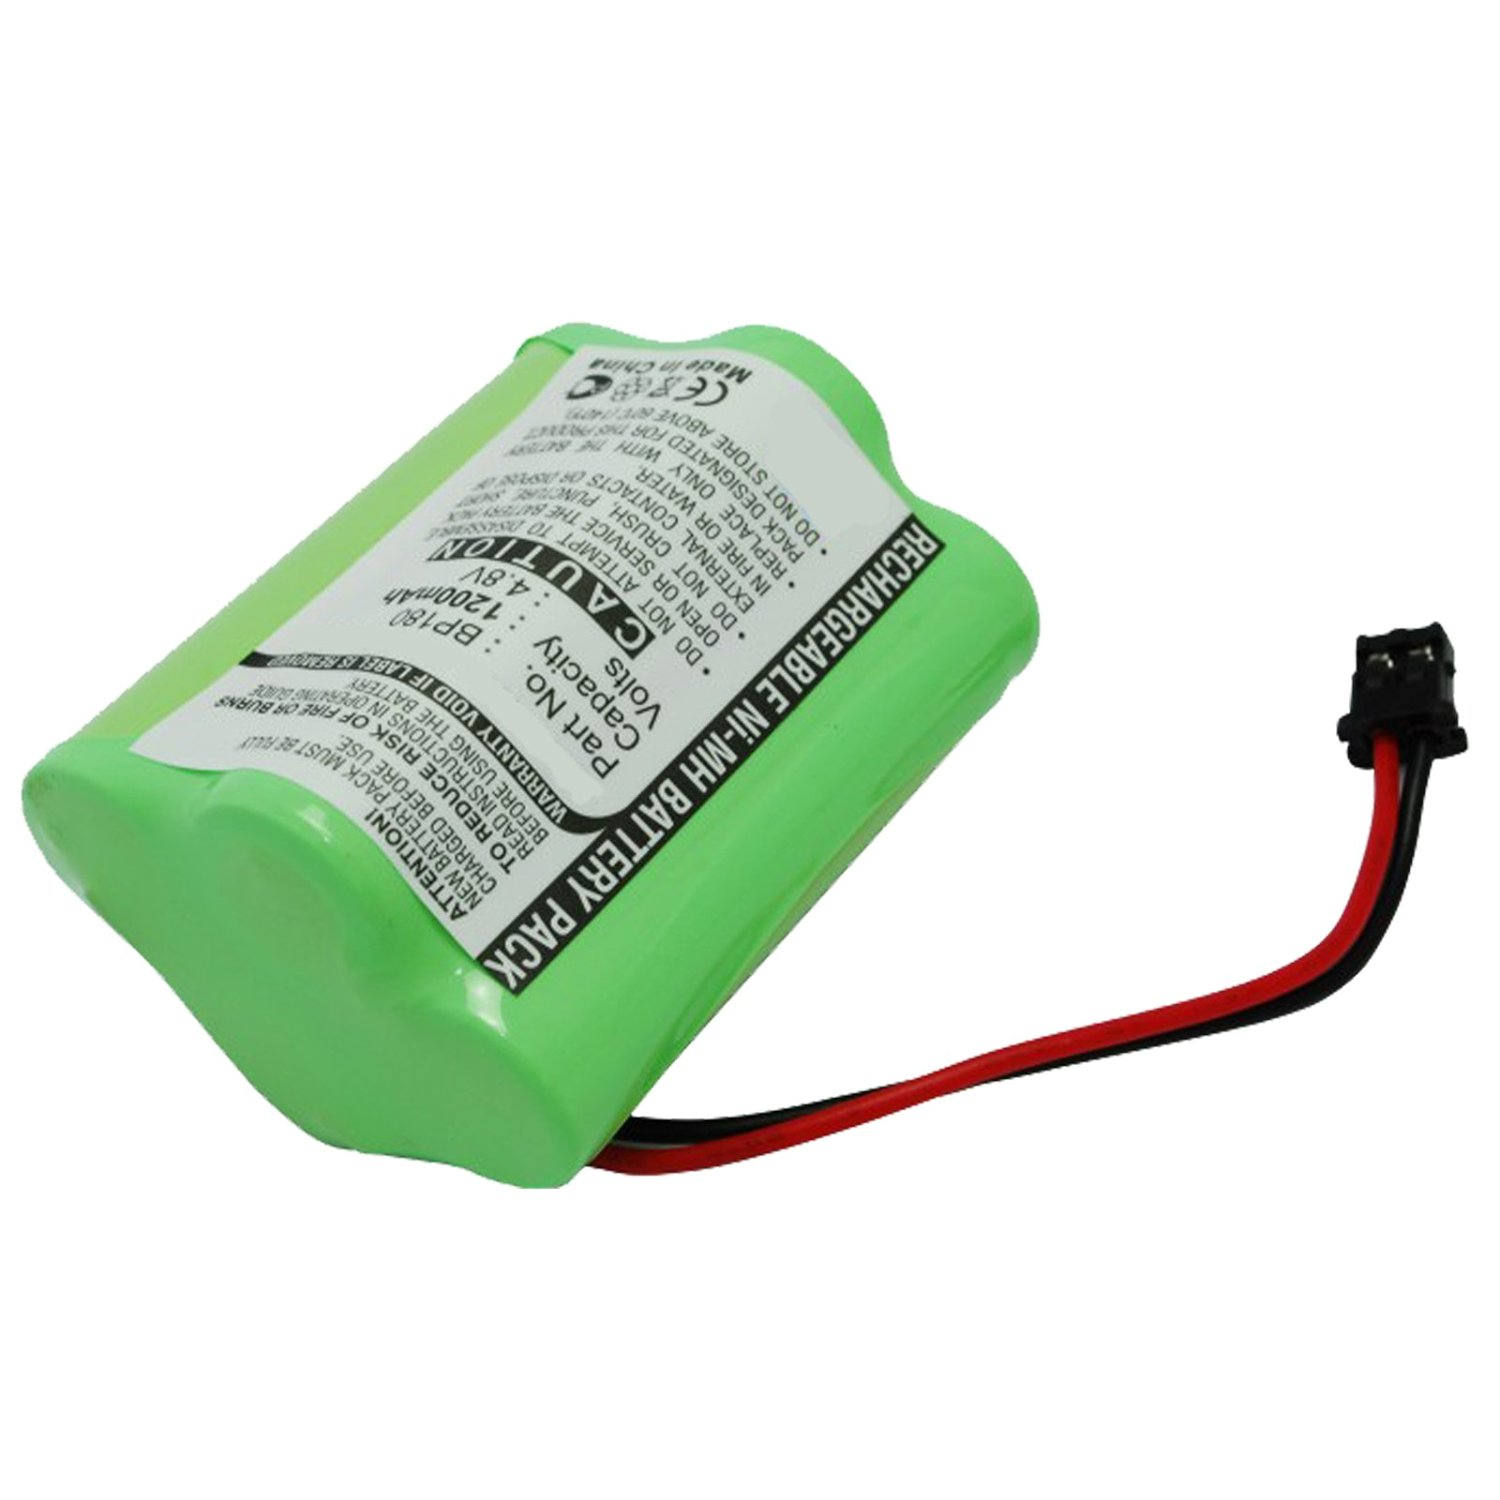 Cheap Bp 250 Battery, find Bp 250 Battery deals on line at